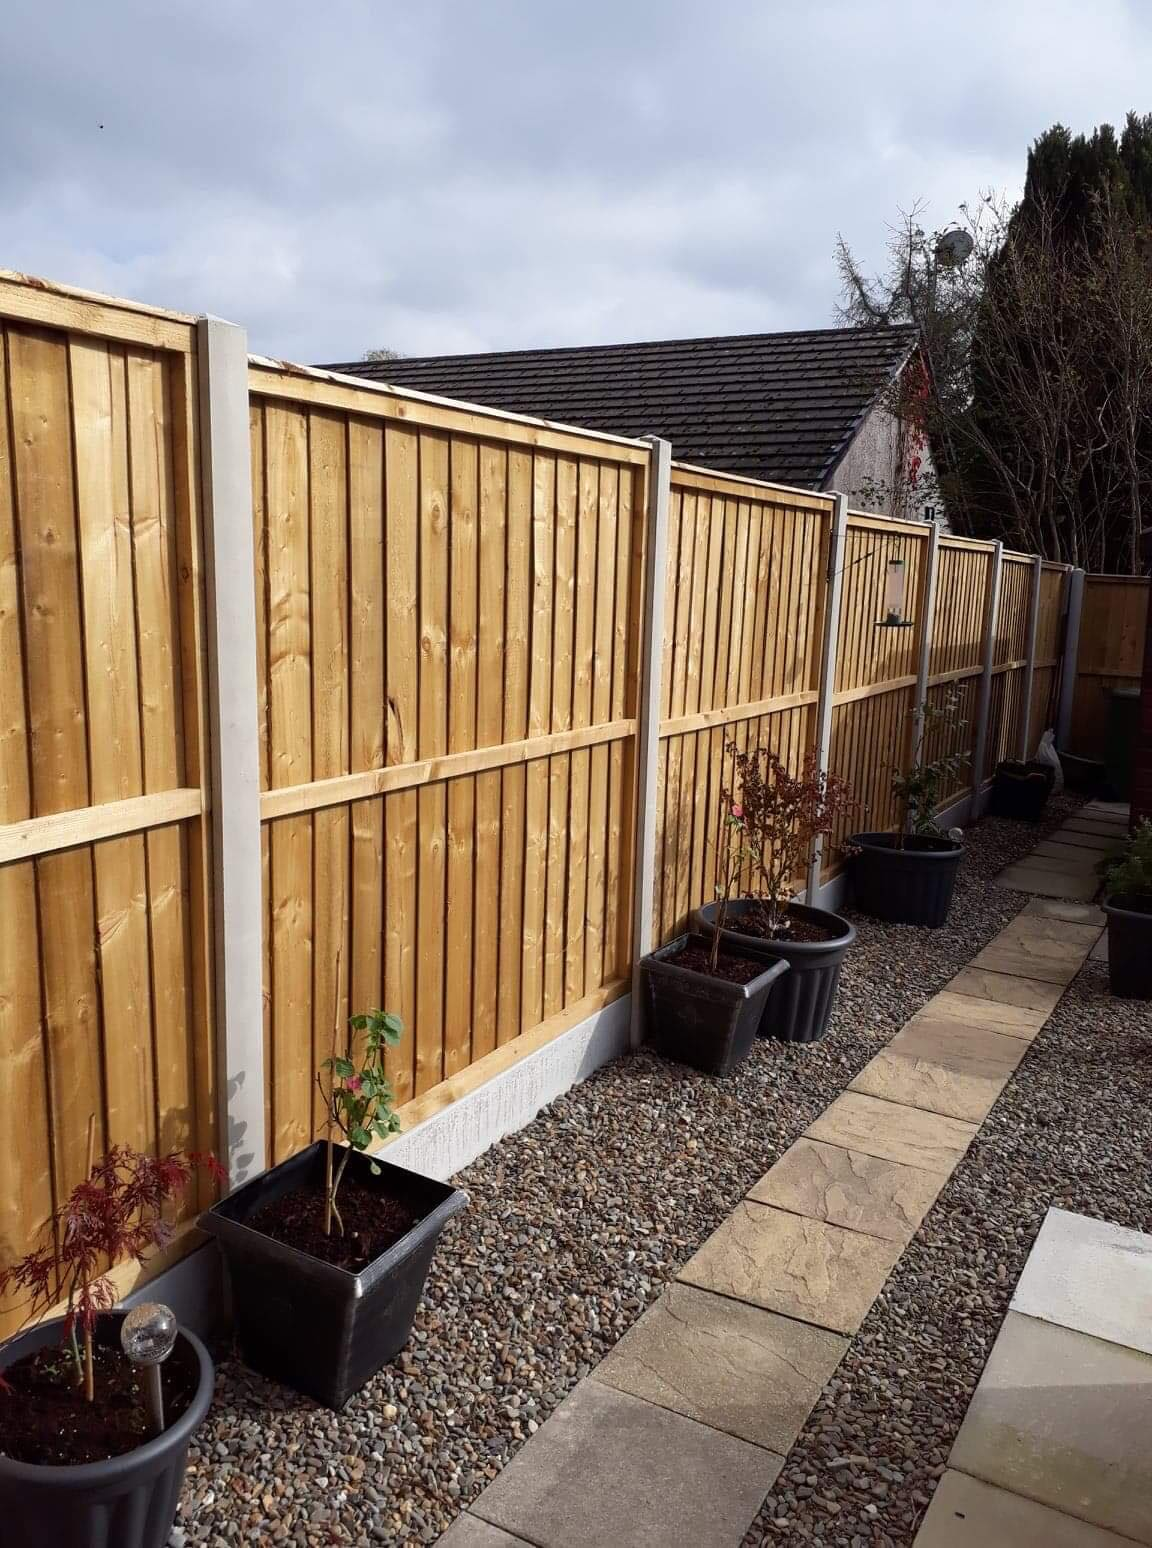 Straight edged top of panel fencing in concrete base. Potted plants in front.